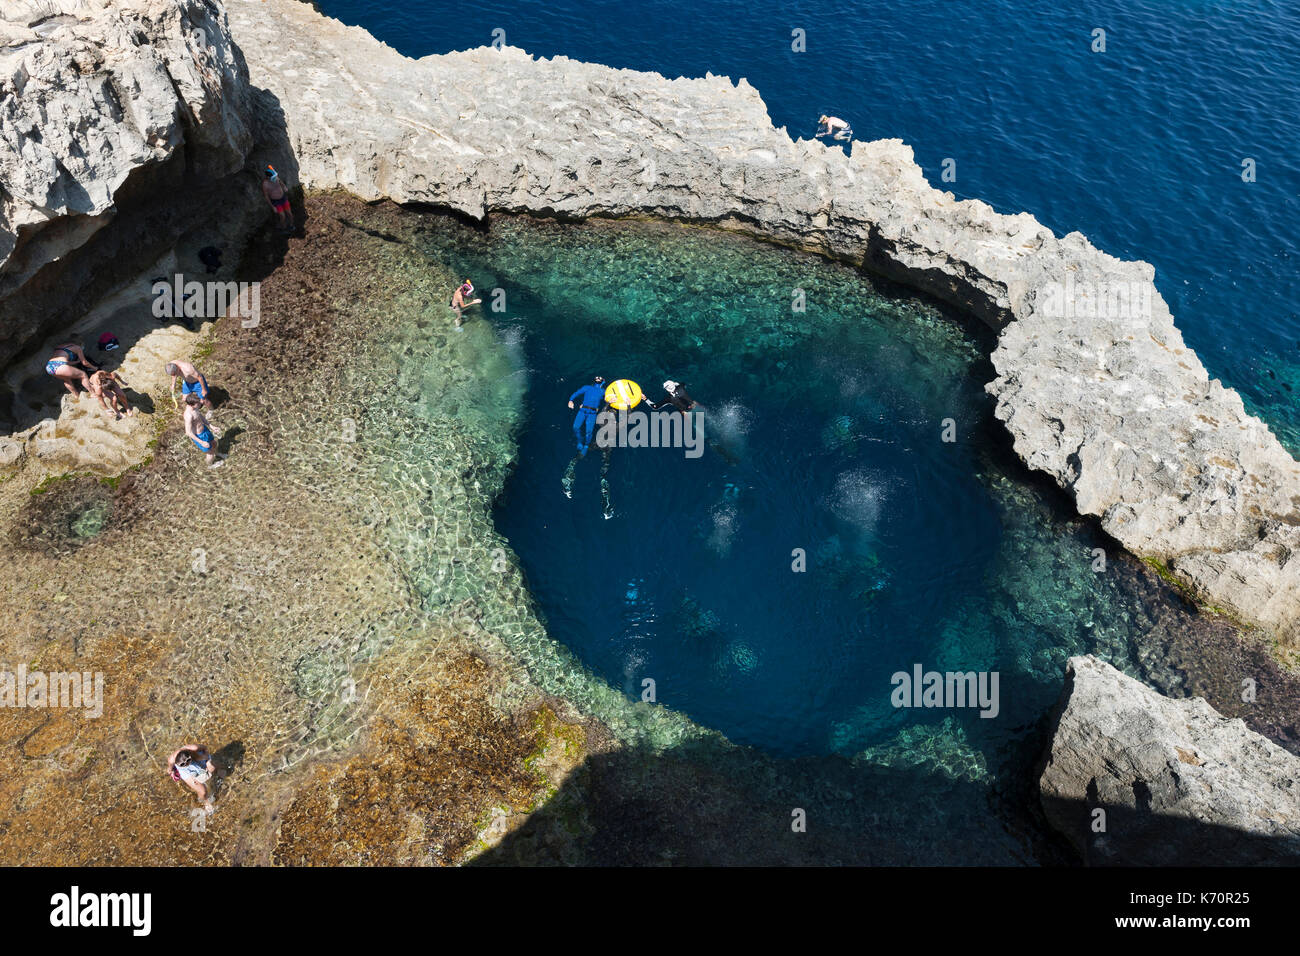 Dive site near the former Azure Window rock arch near Dwejra Bay on the island of Gozo in Malta. - Stock Image